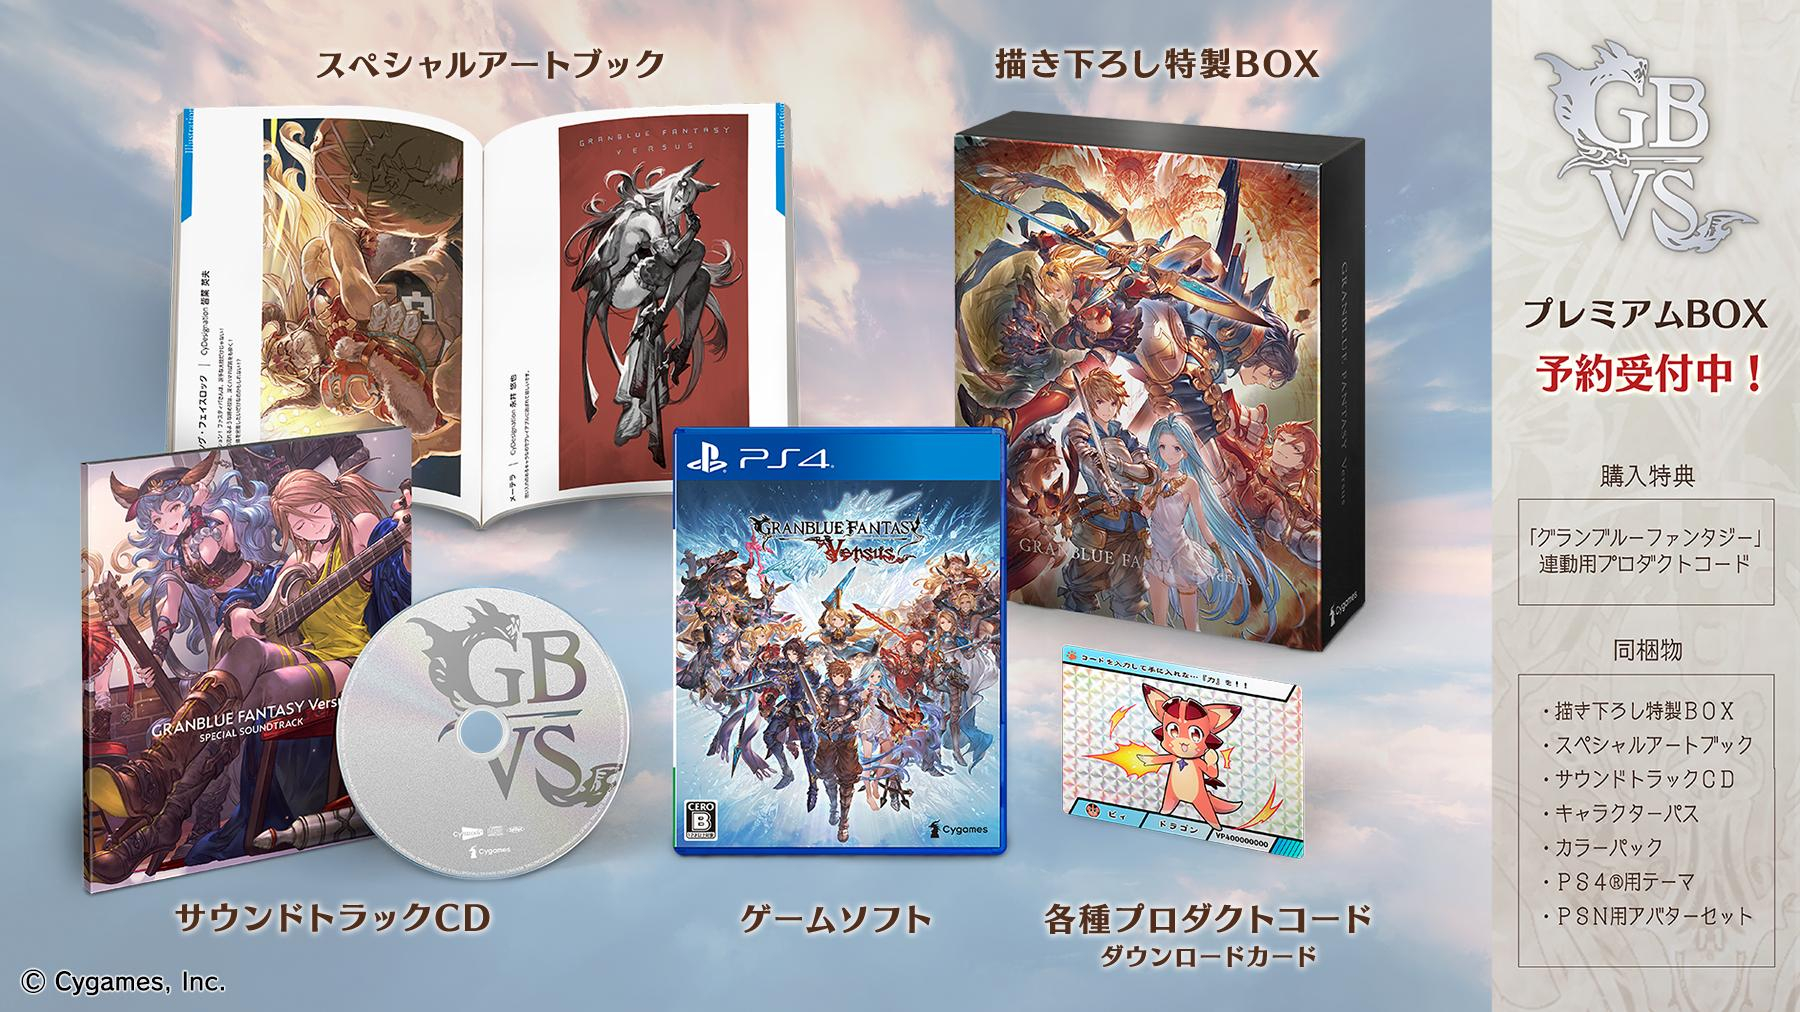 arc system works, Arc Systems Works, blazblue, Granblue Fantasy, Granblue Fantasy Versus, Guilty Gear, News, Originals, PC, PS4